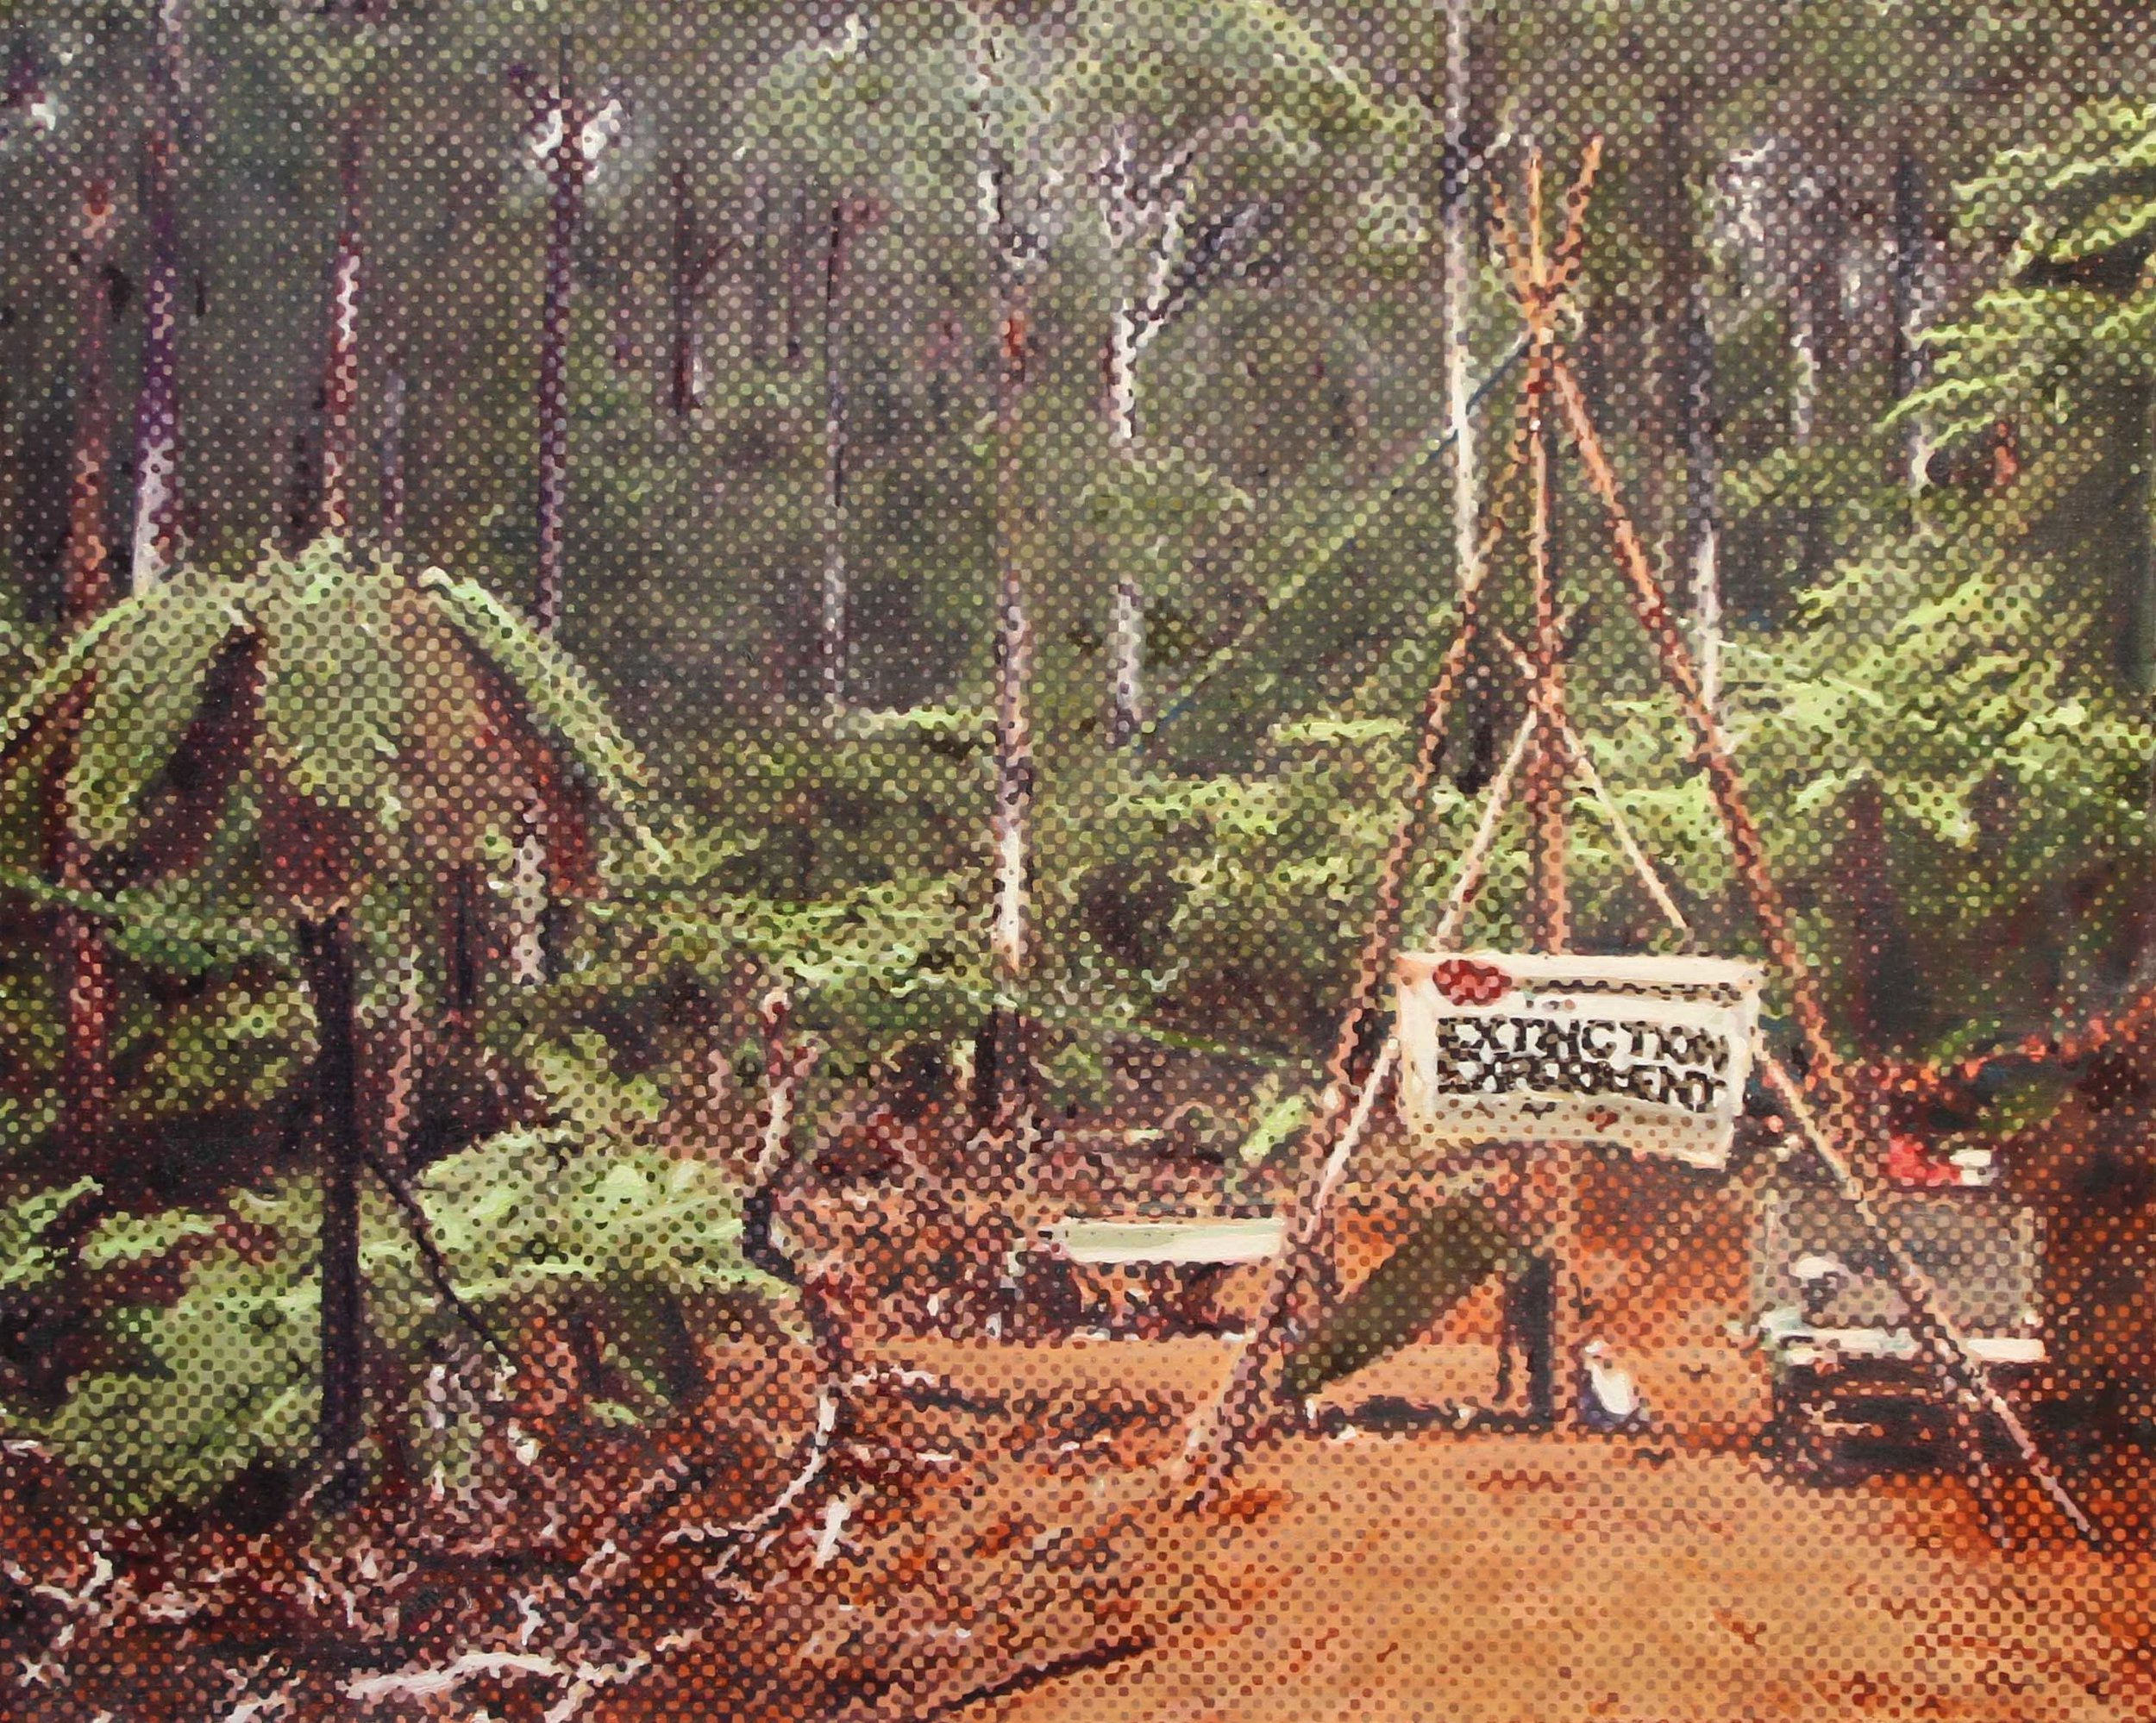 Marc de Jong, Forest Blockade oil on canvas, 91 x 80.5 cm, available